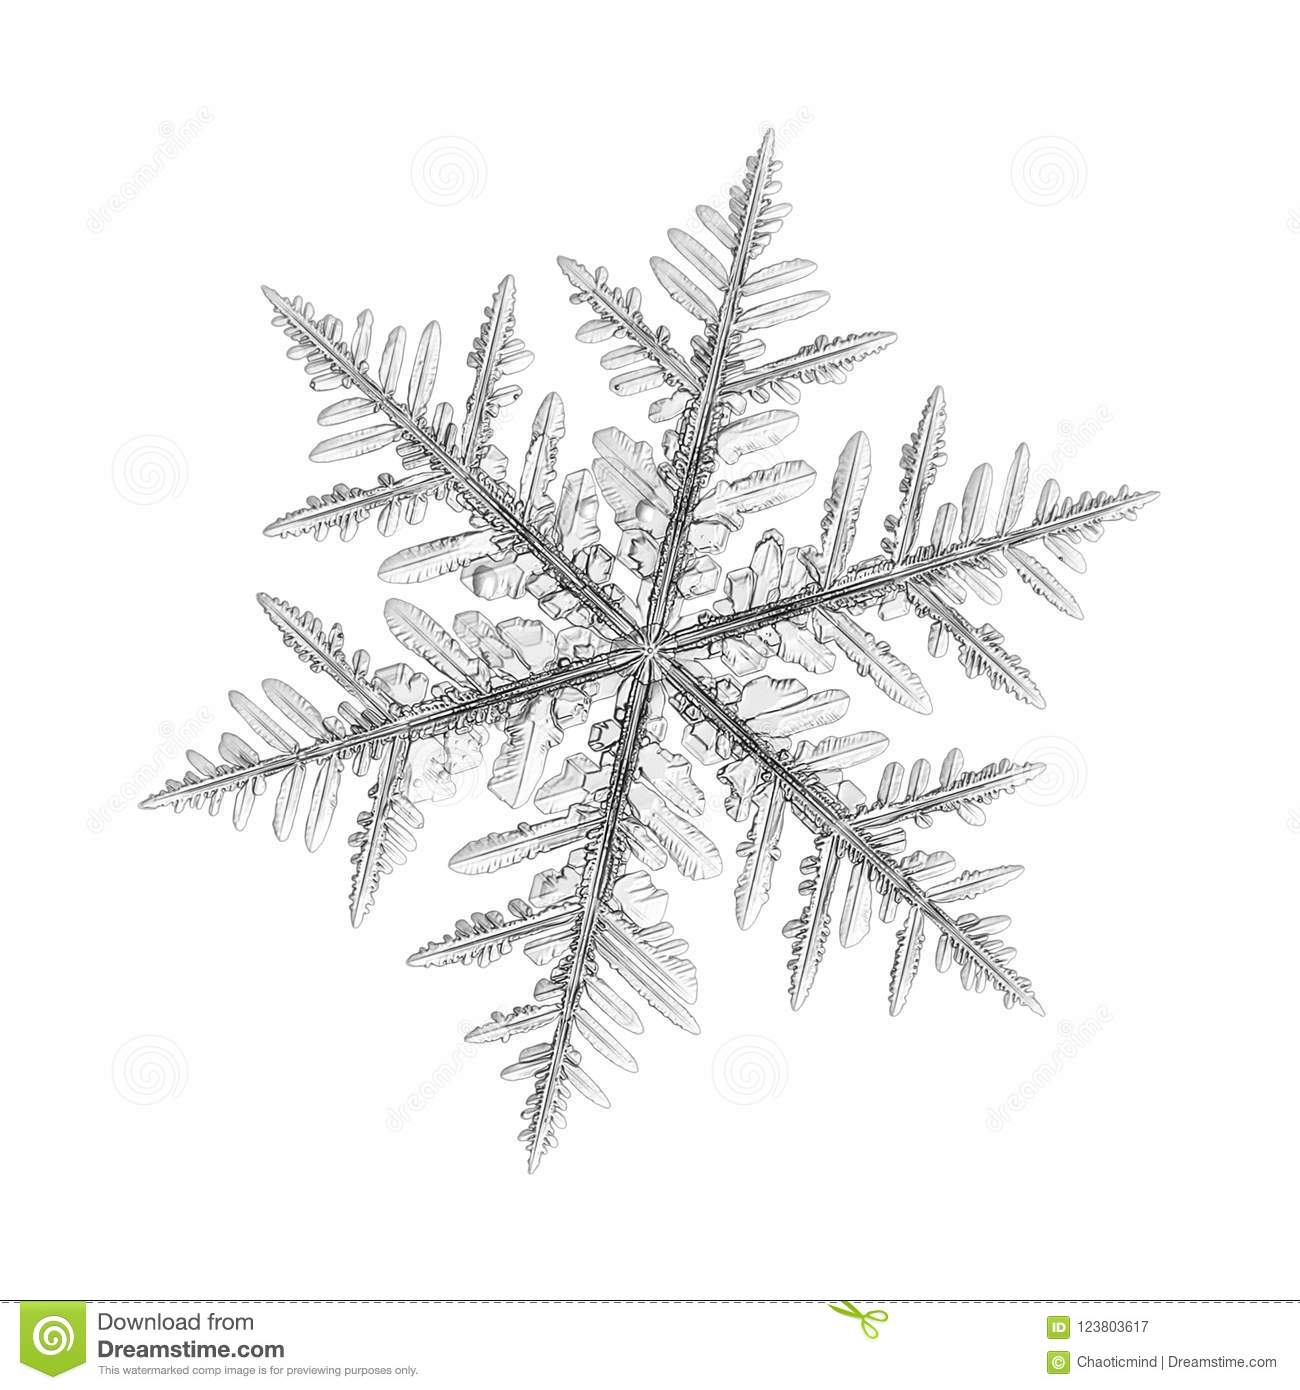 Real snowflake isolated on white background